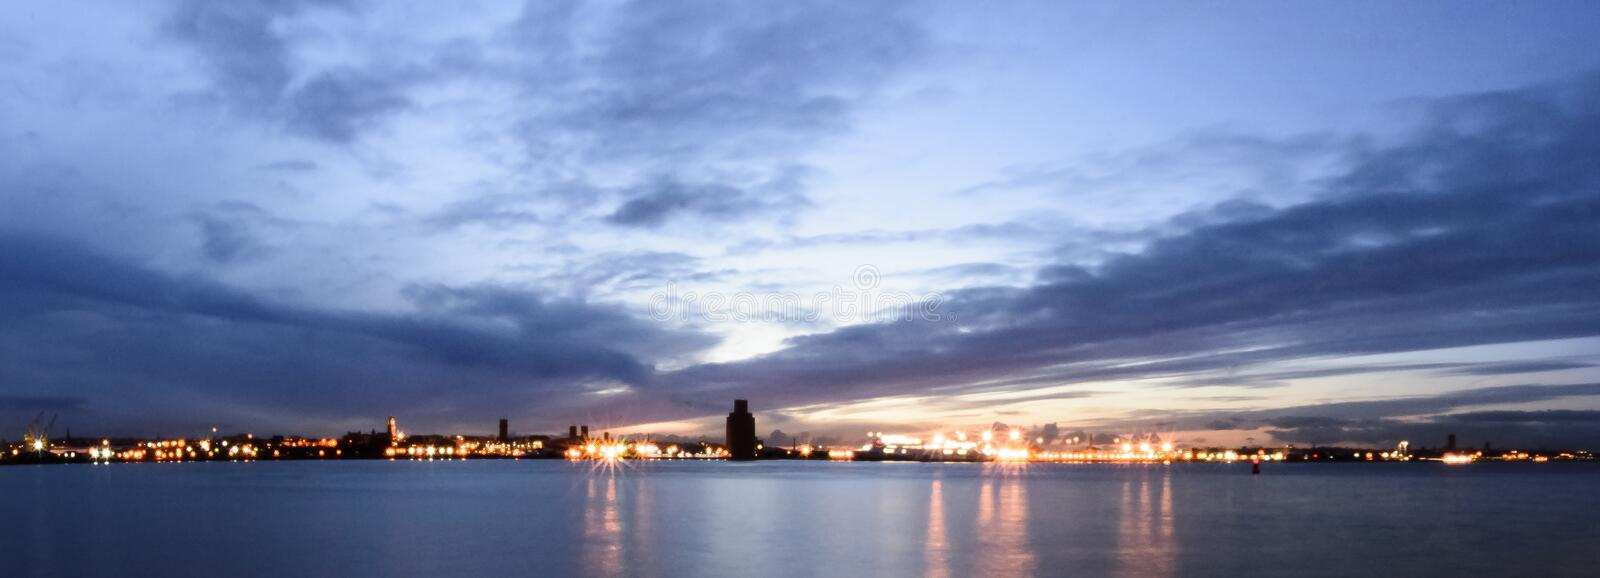 River Mersey and Birkenhead by night - panoramic view from Keel Wharf waterfront in Liverpool, UK. River Mersey and Birkenhead by night - panoramic view from royalty free stock image